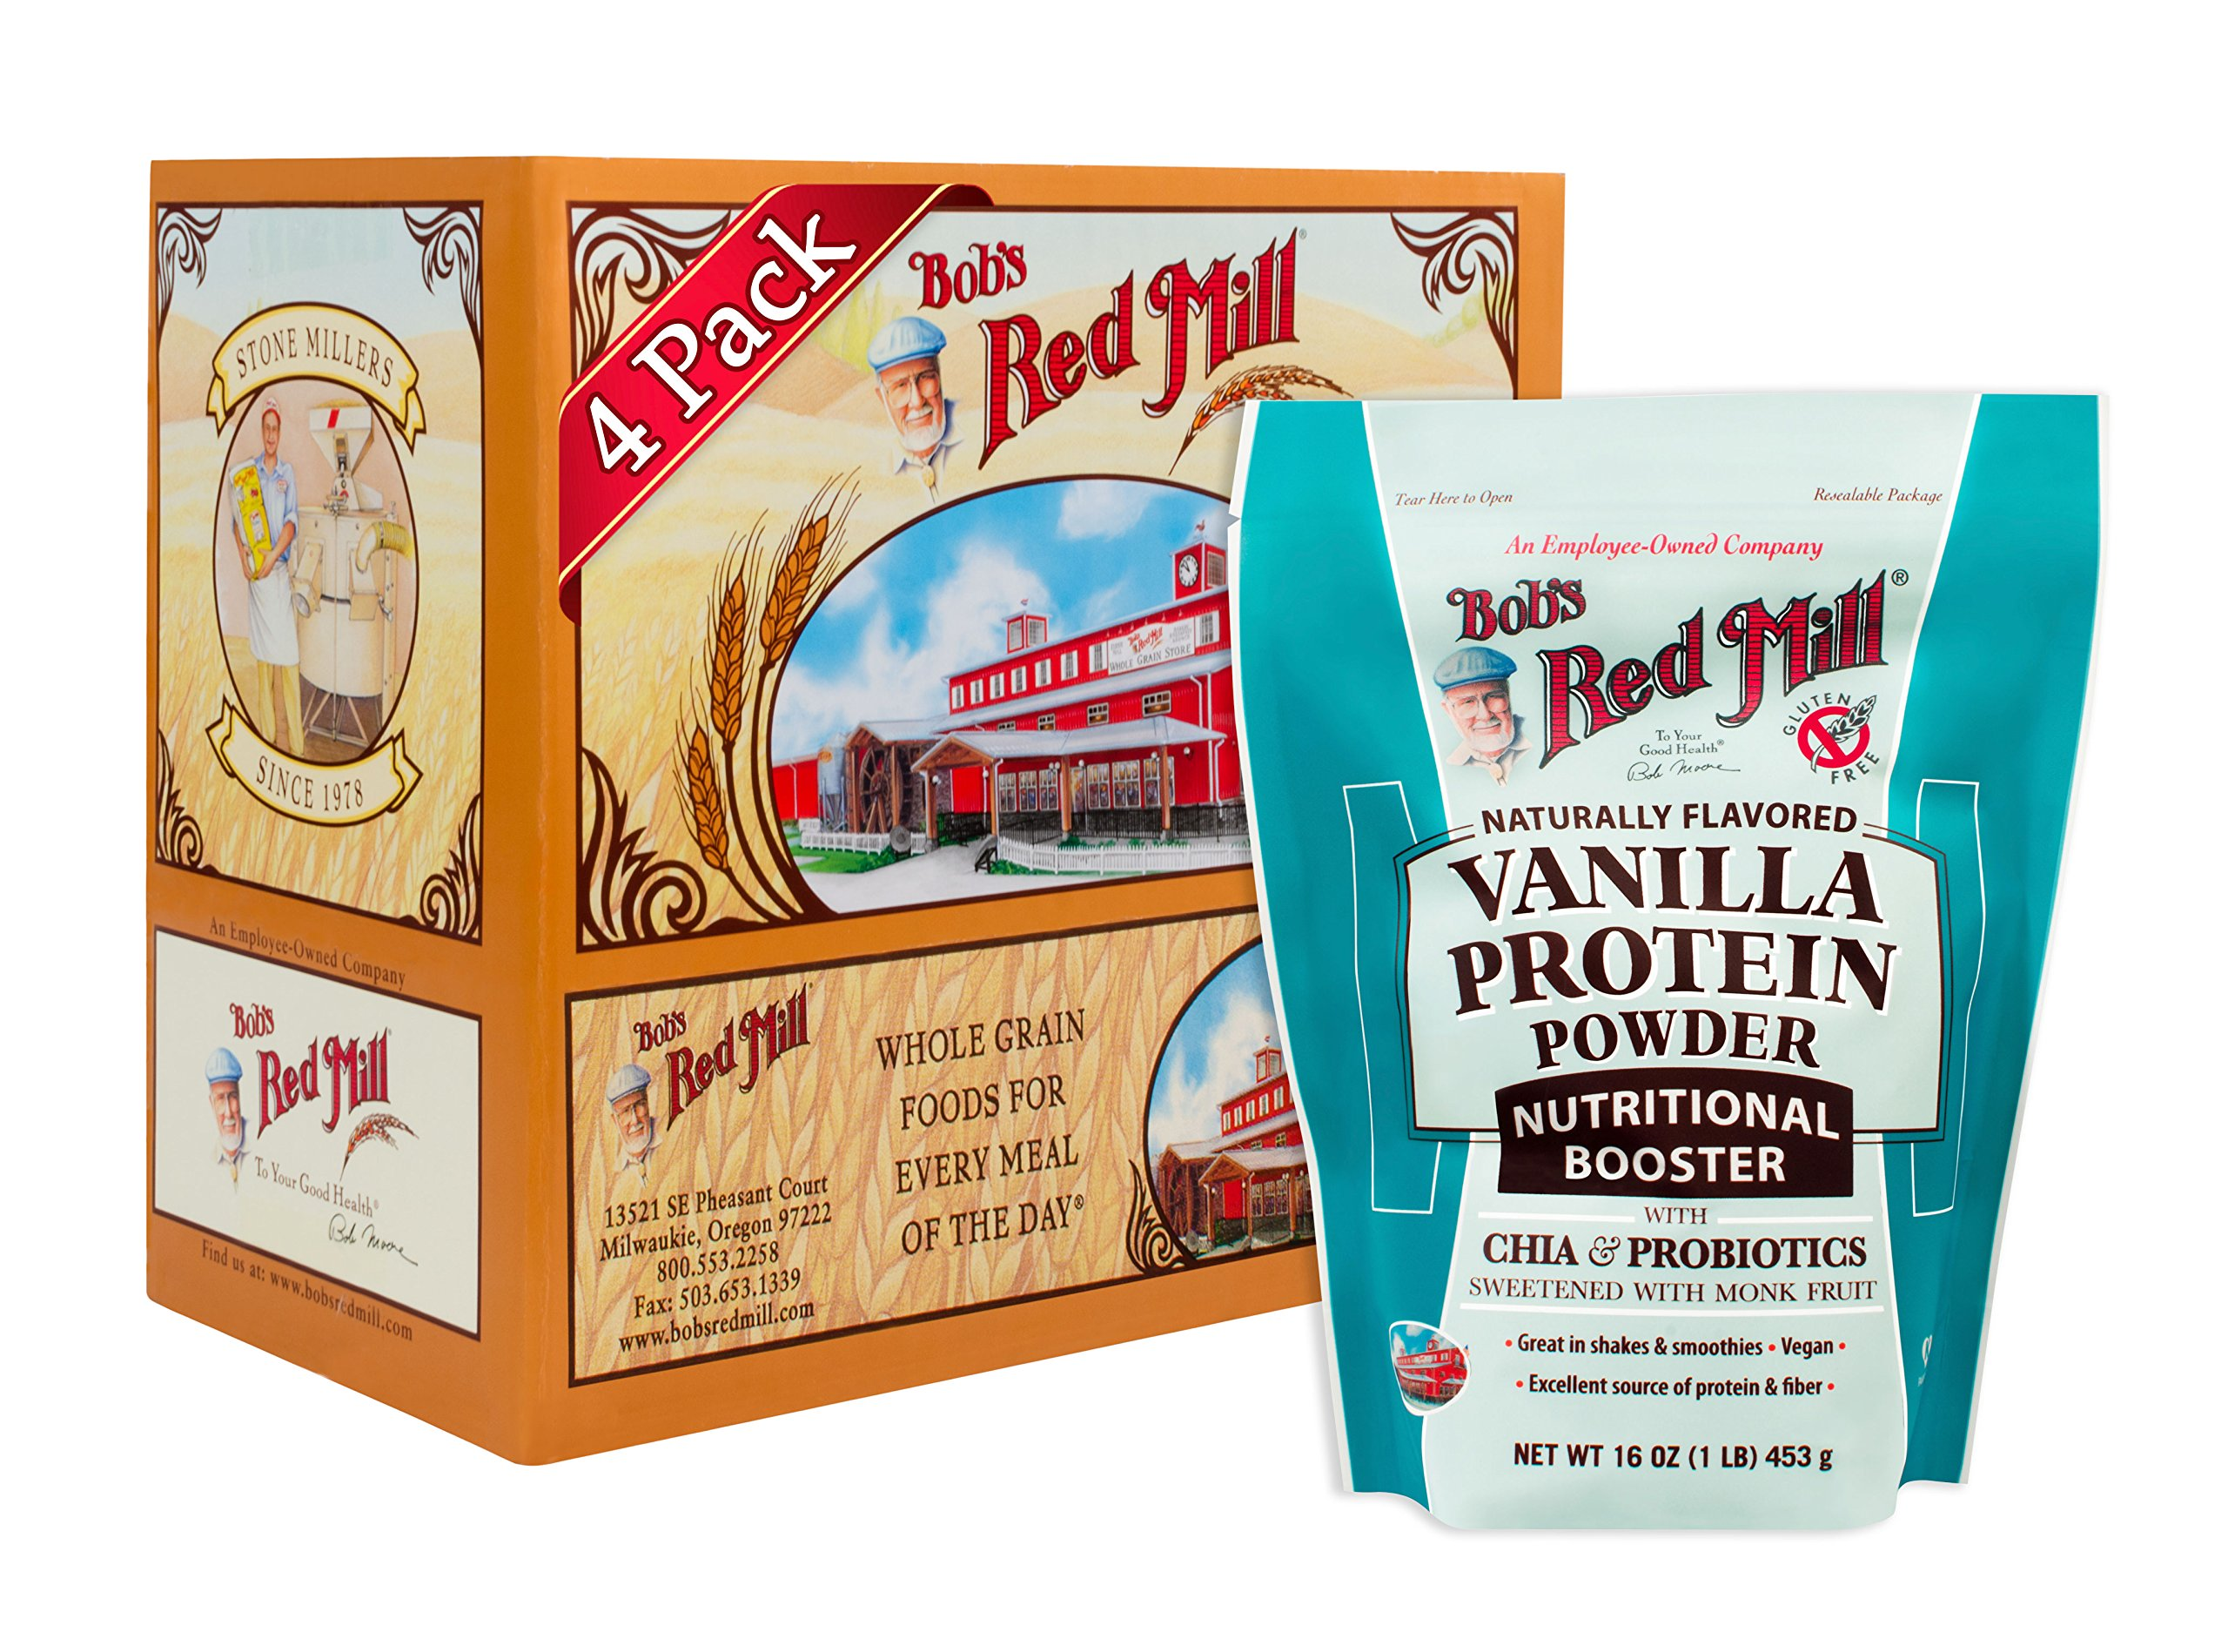 Bob's Red Mill Resealable Gluten Free Vanilla Protein Powder Nutritional Booster, 16 Oz (4 Pack) by Bob's Red Mill